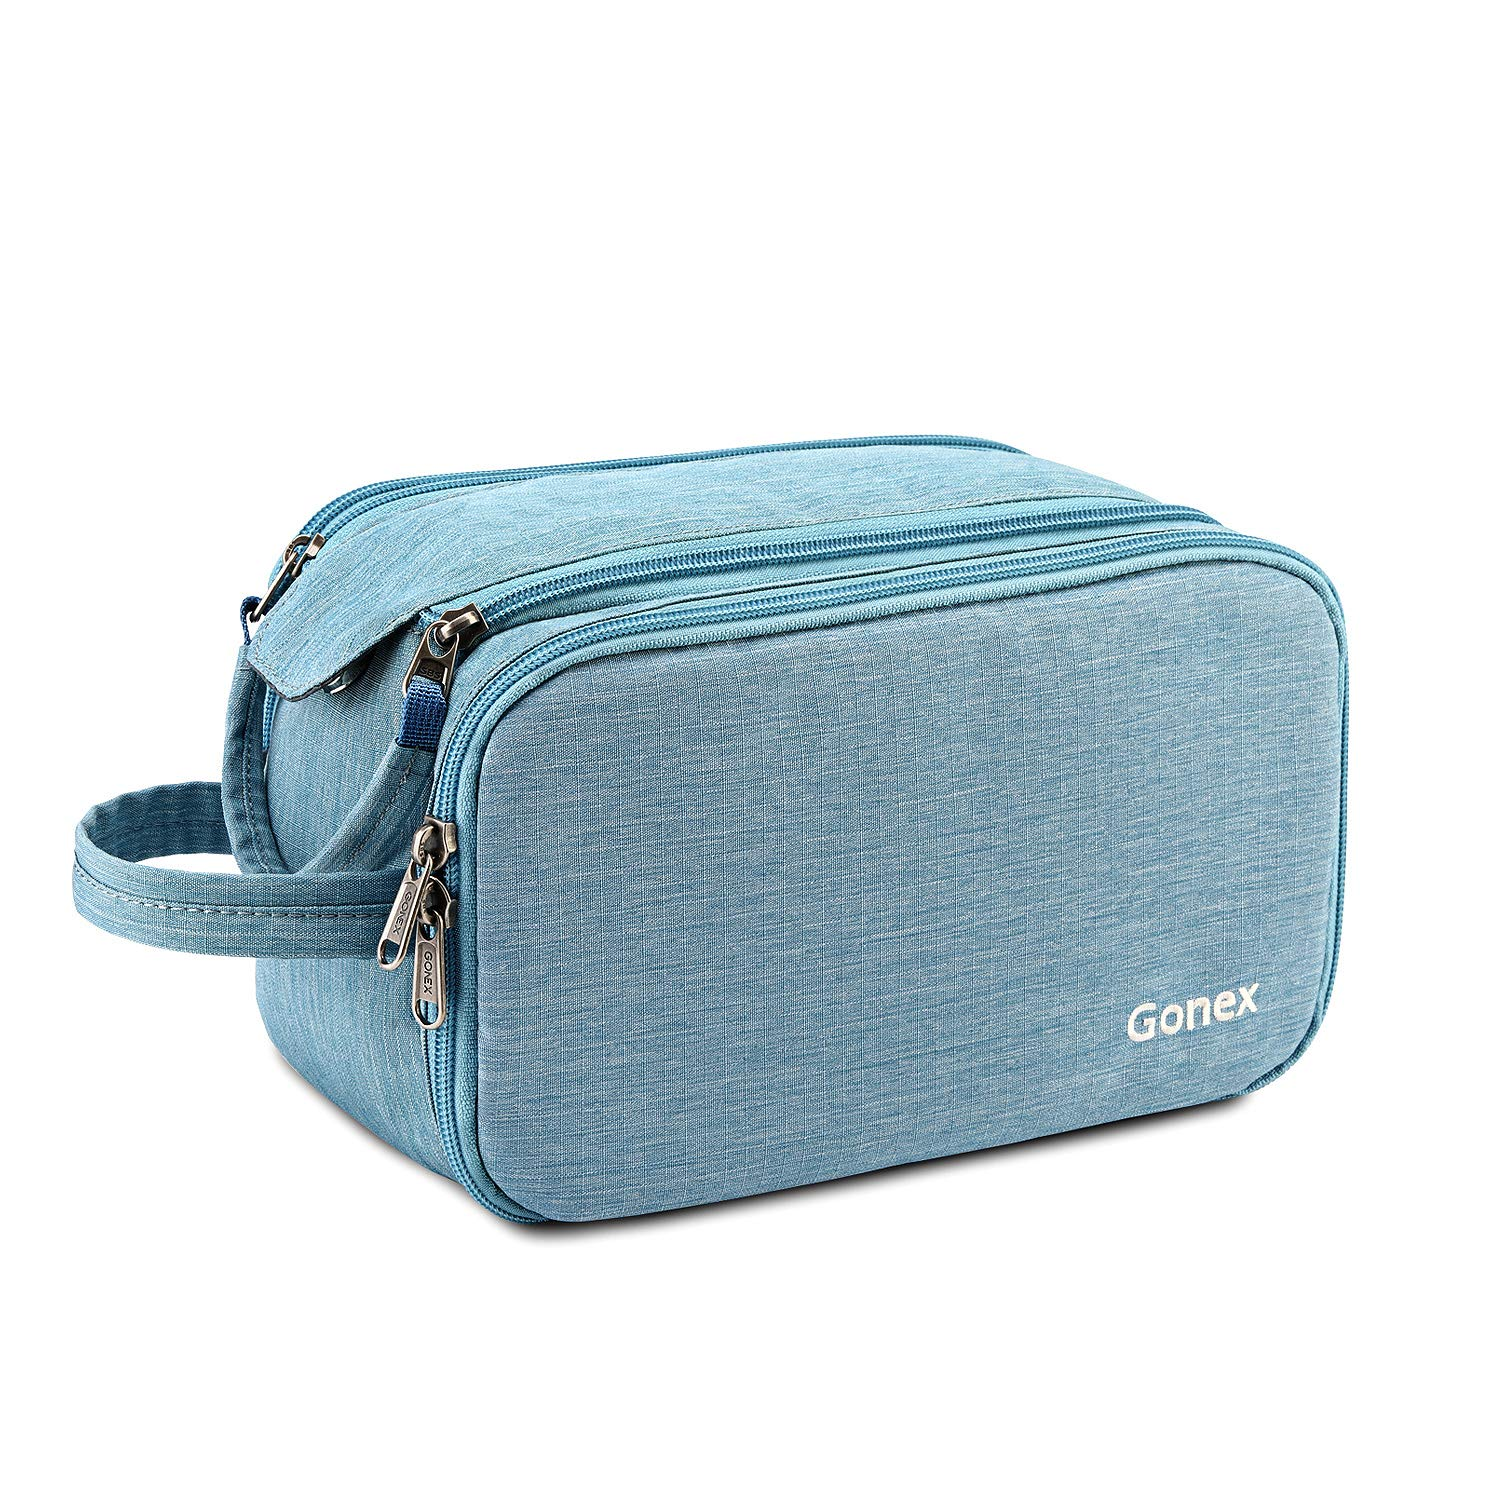 Gonex Travel Toiletry Bag with Dual-Way Zippers Dopp Kit for Men Women Toiletries Makeup Bag Cosmetic Organizer Shaving Bag for Business Trip Light Blue